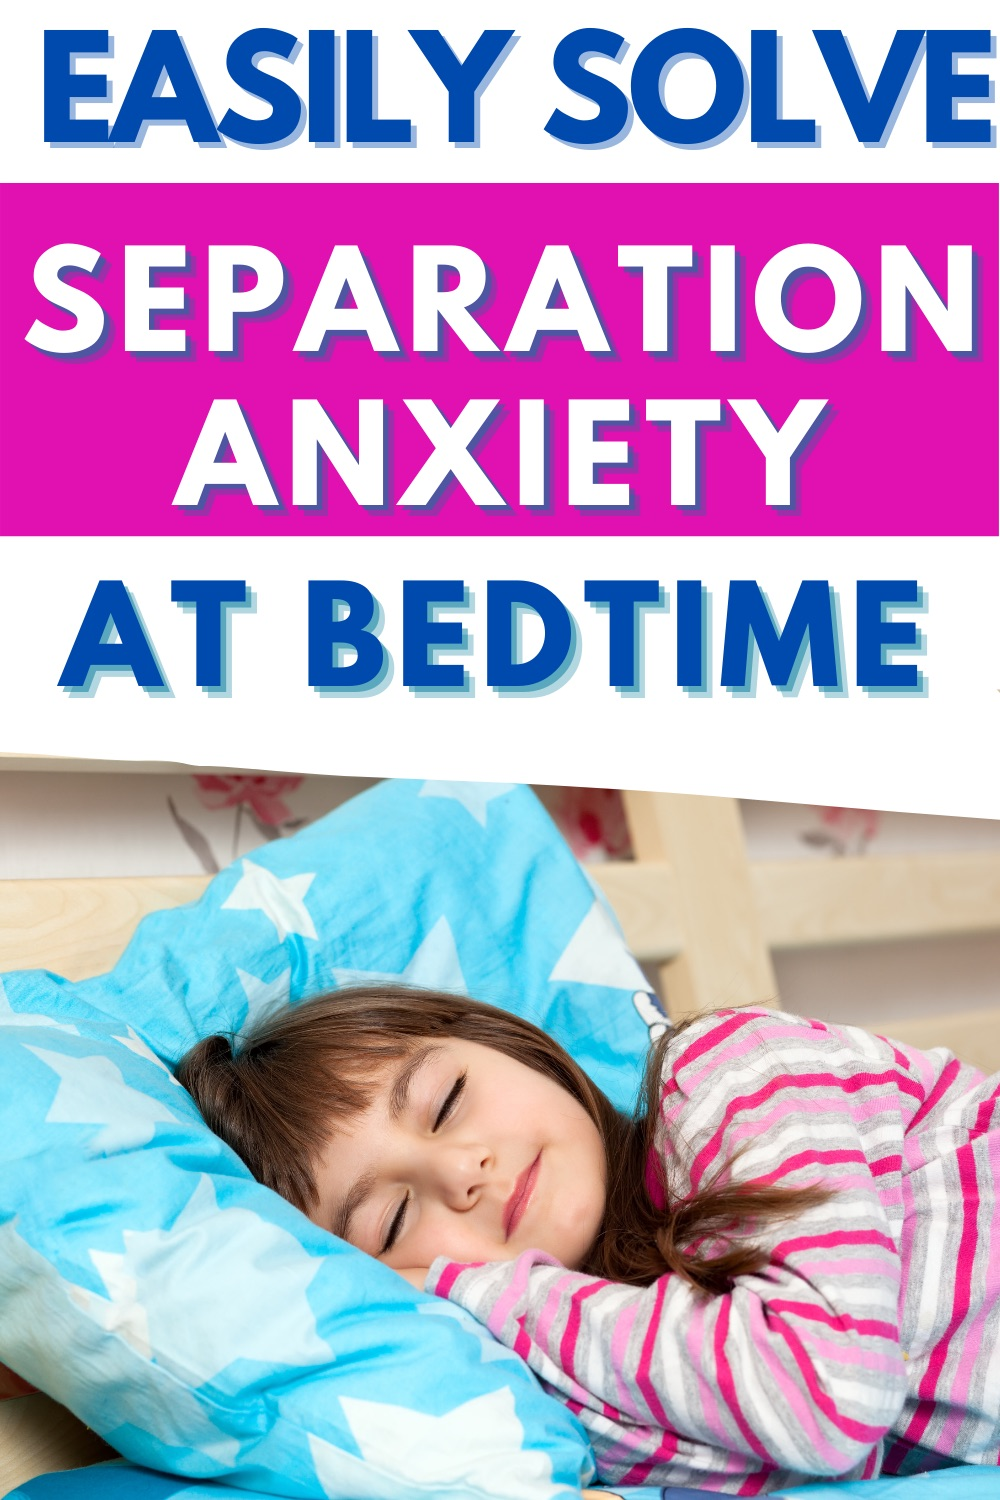 Easily Solve separation anxiety at bedtime